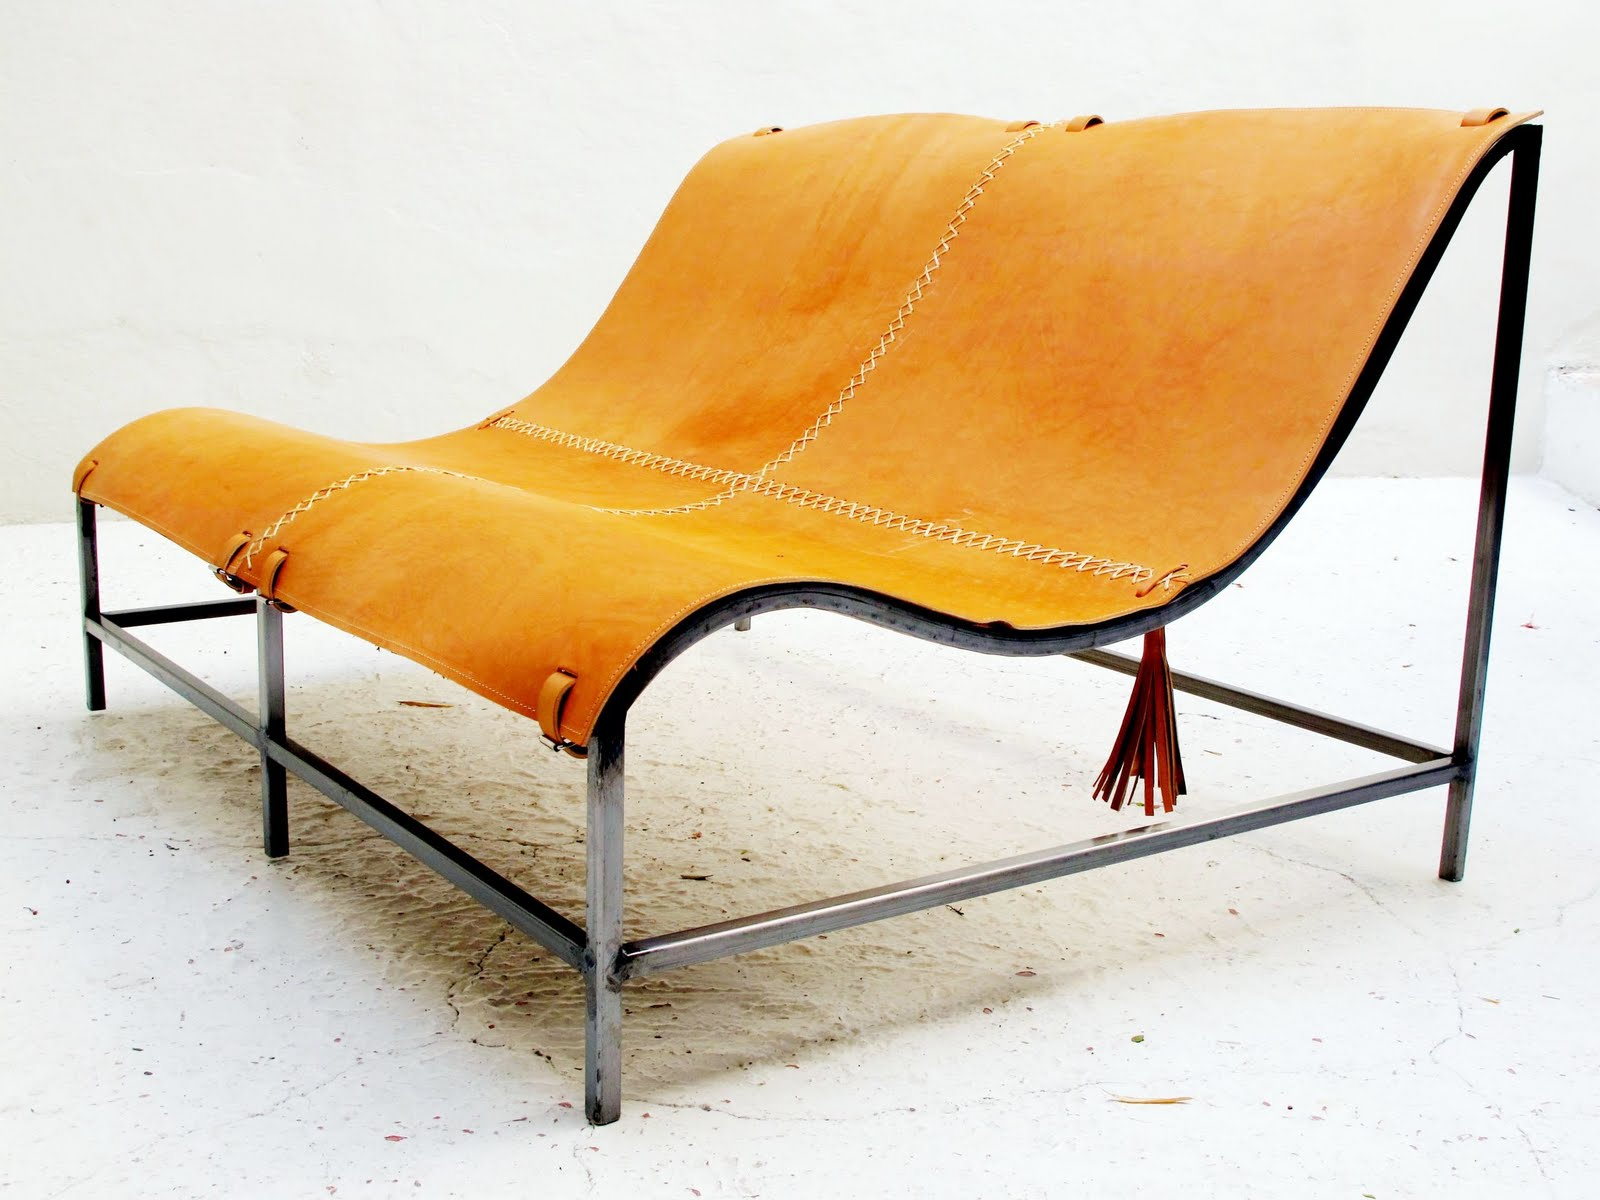 Casamidy   Montelargo   $1,350 (5 Feet Long. Leather And Metal) (above)